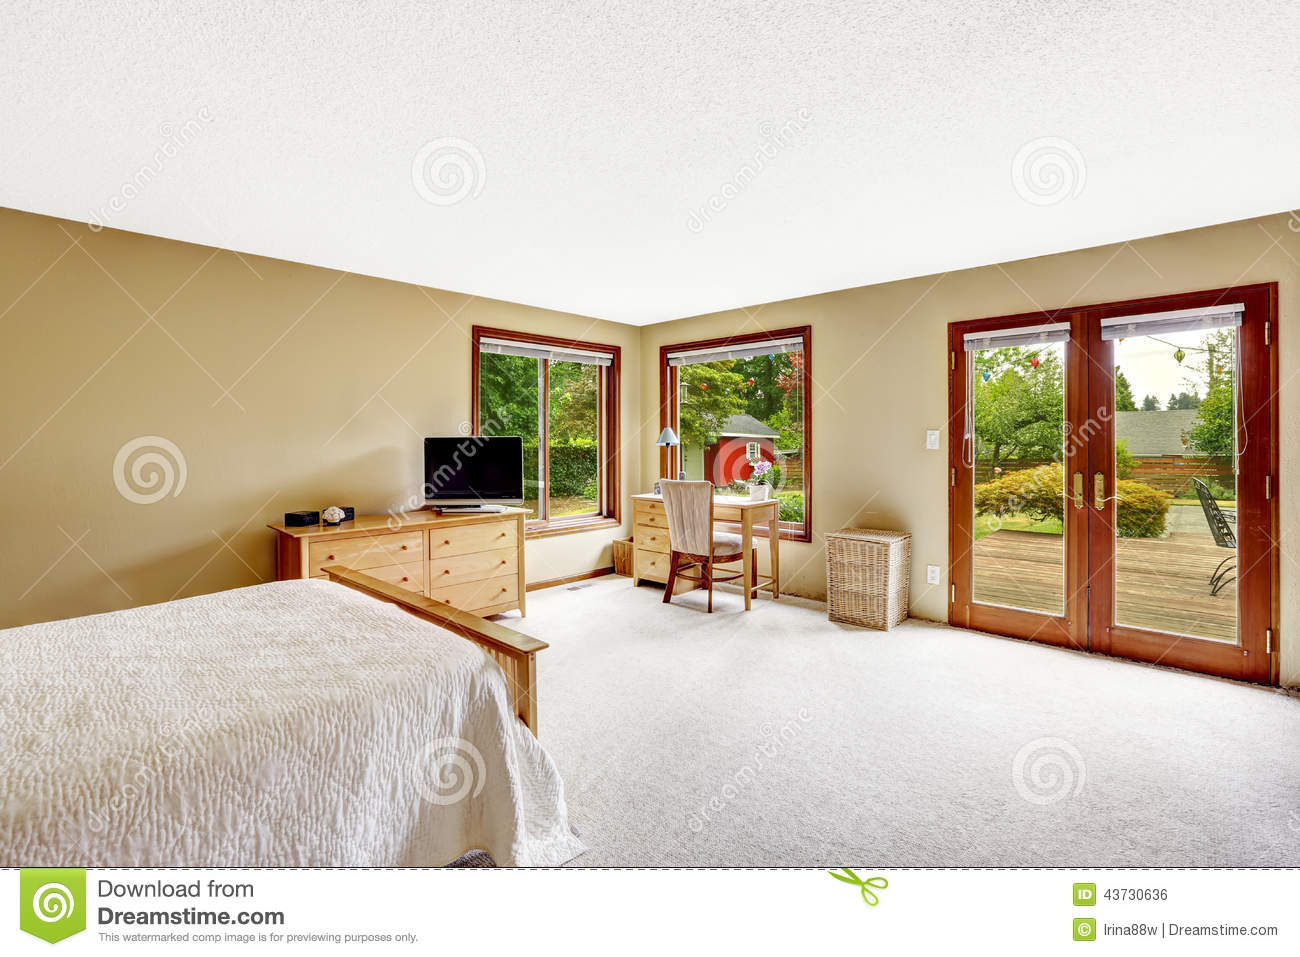 Bedroom With Walkout Basement Deck Stock Photo Image Of Room House 43730636